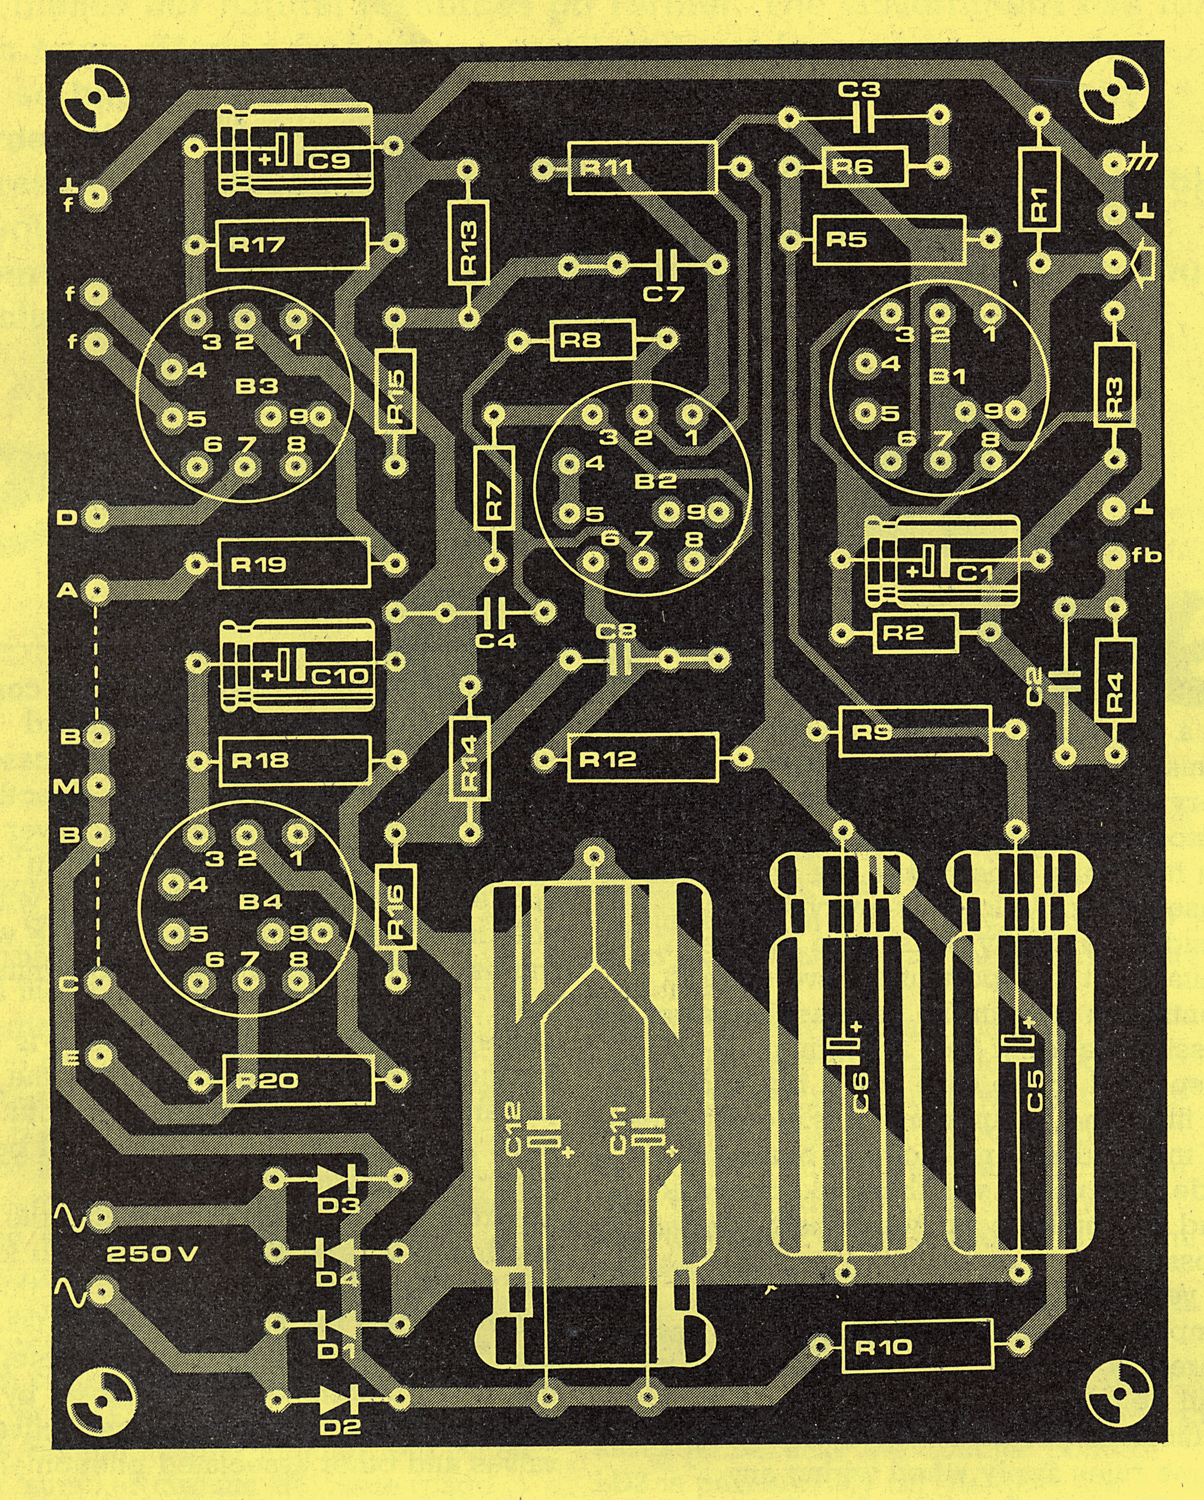 Elektor Ten Watt Valve Amplifier With Just Four Valves Highend Power Circuit Electronic The Printed Board Template Copper Side